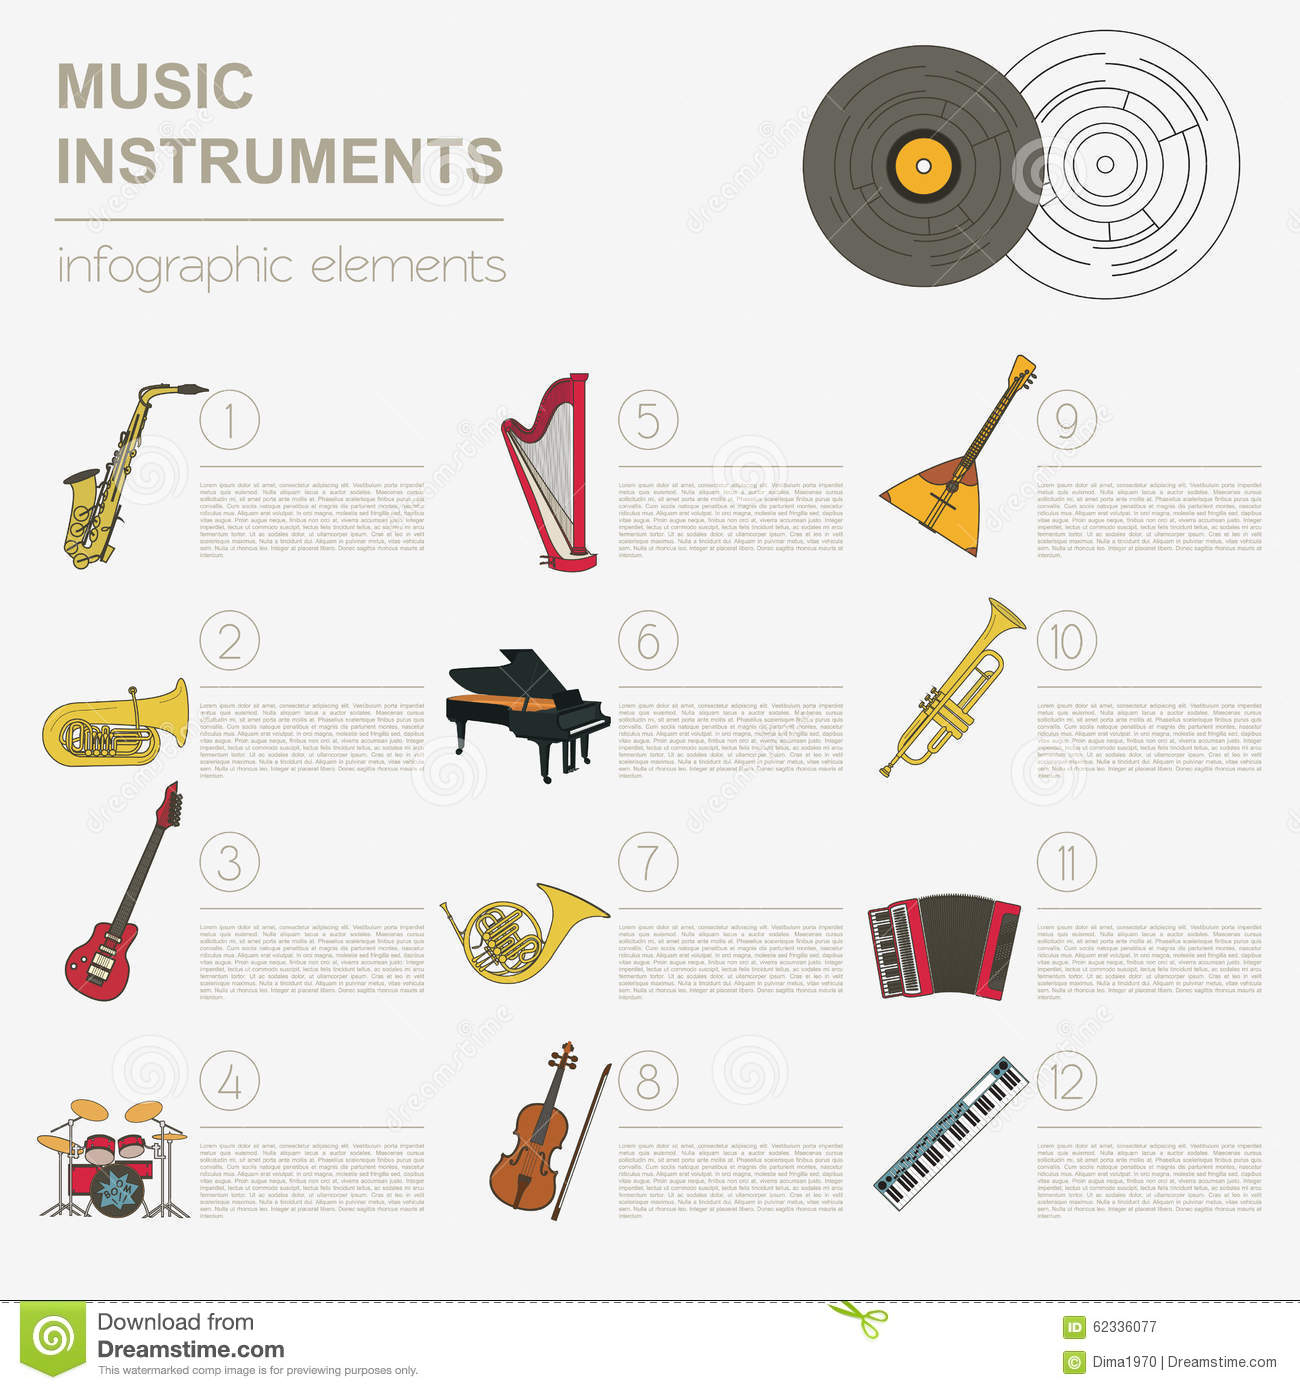 Printables Types Of Musical Instrument musical instruments graphic template all types of instr royalty free stock photography